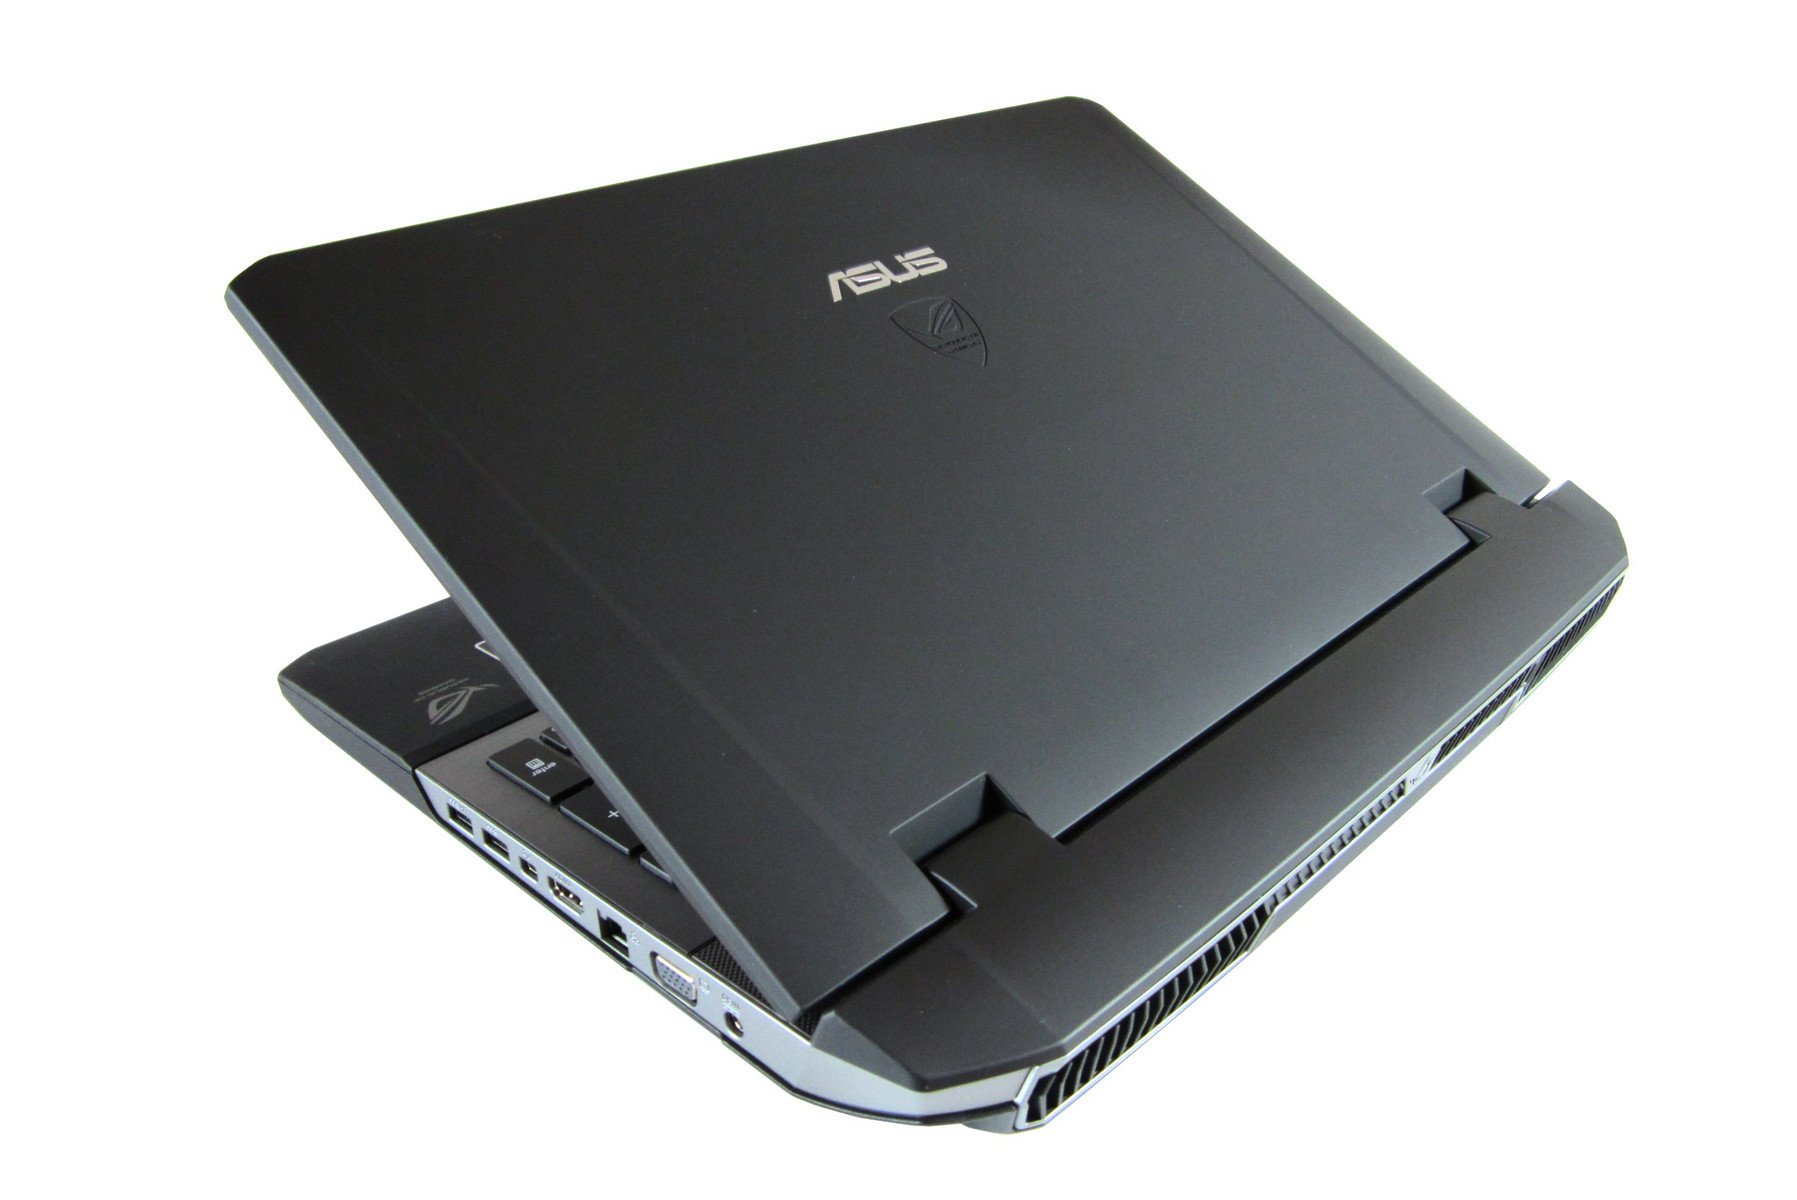 ASUS G75VW WINDOWS 8.1 DRIVERS DOWNLOAD